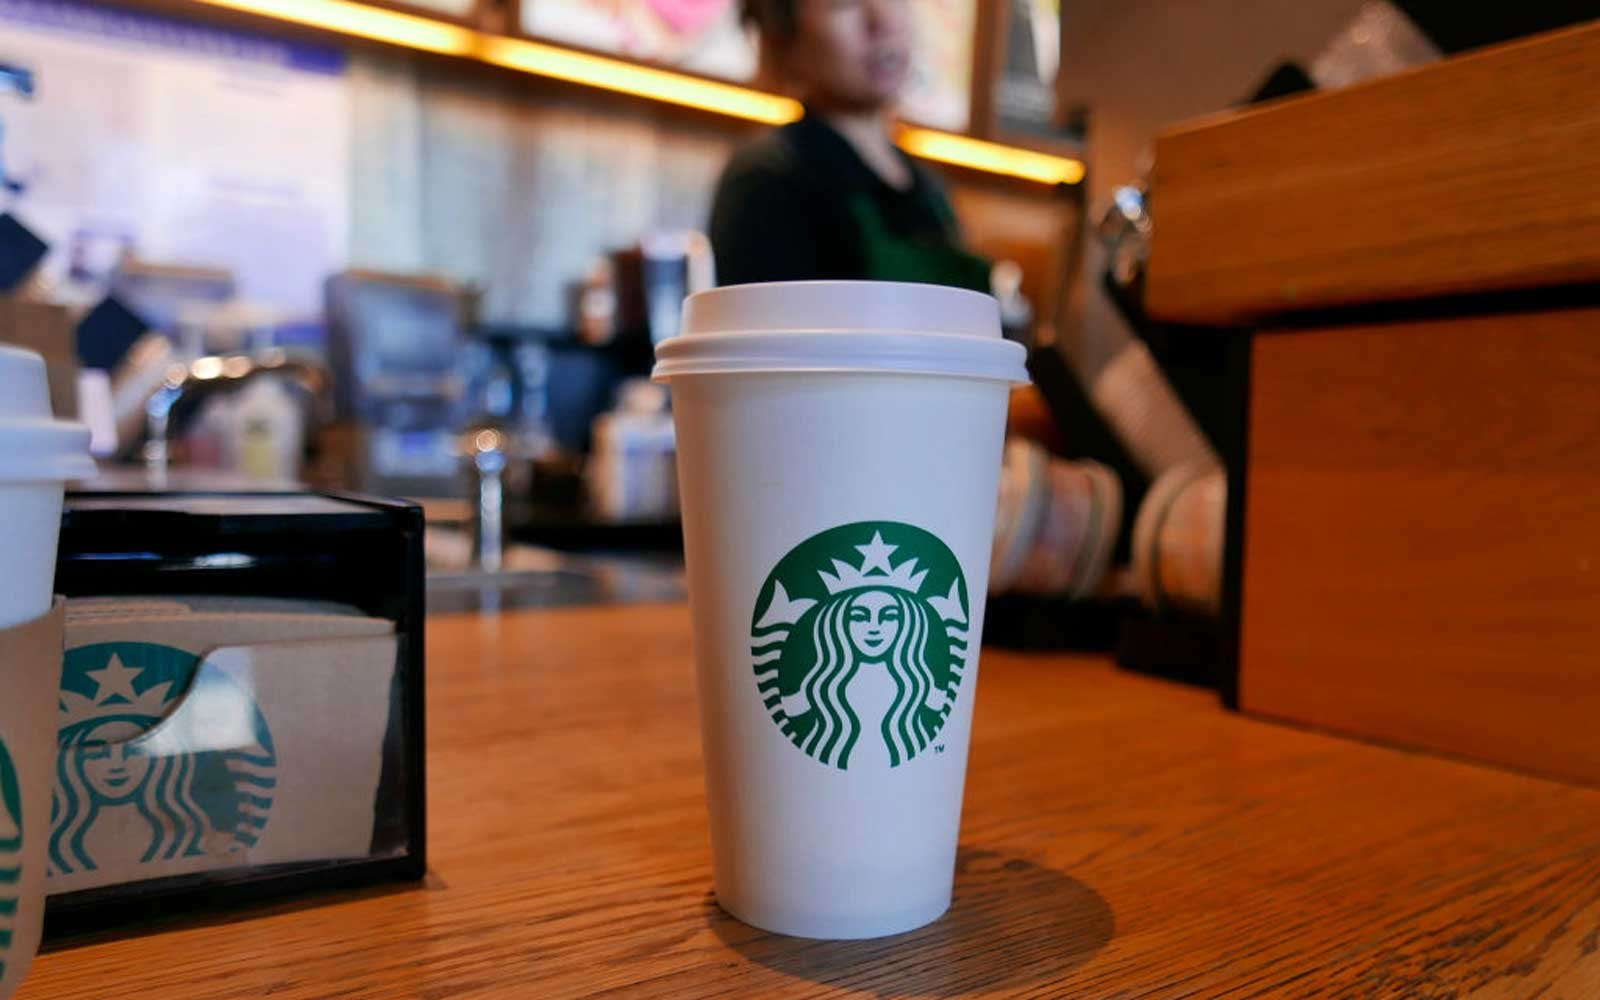 A coffee cup on the counter in a Starbucks coffee shop.  In